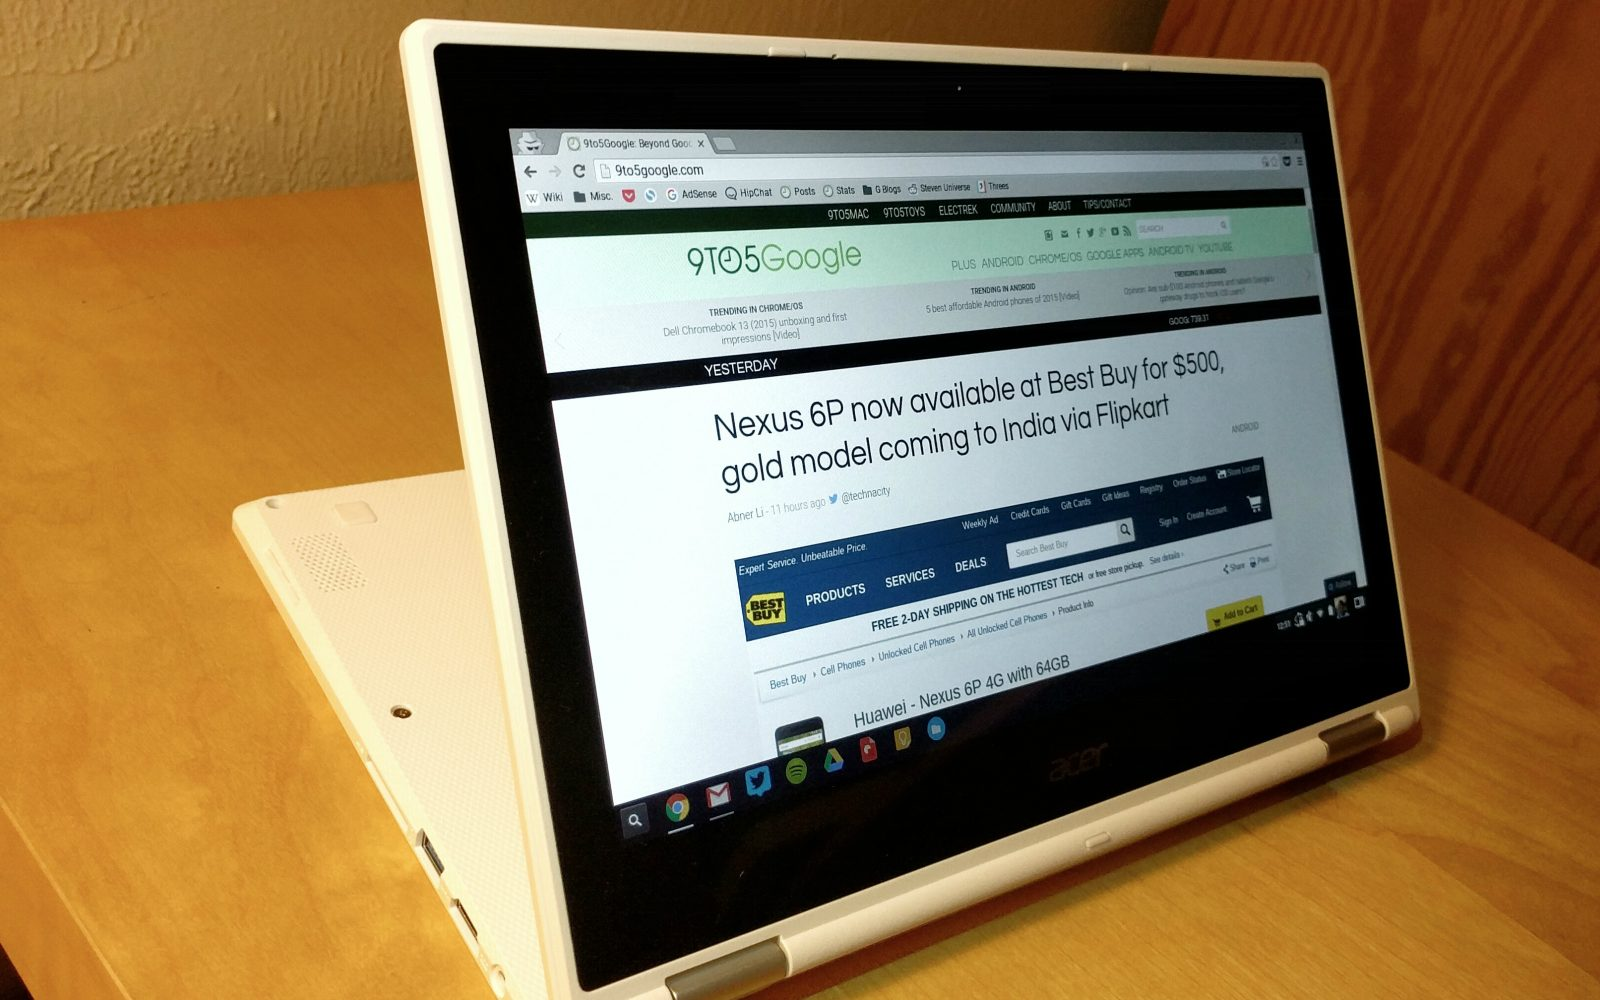 Acer Chromebook R11 review: Great laptop, but Chrome OS is